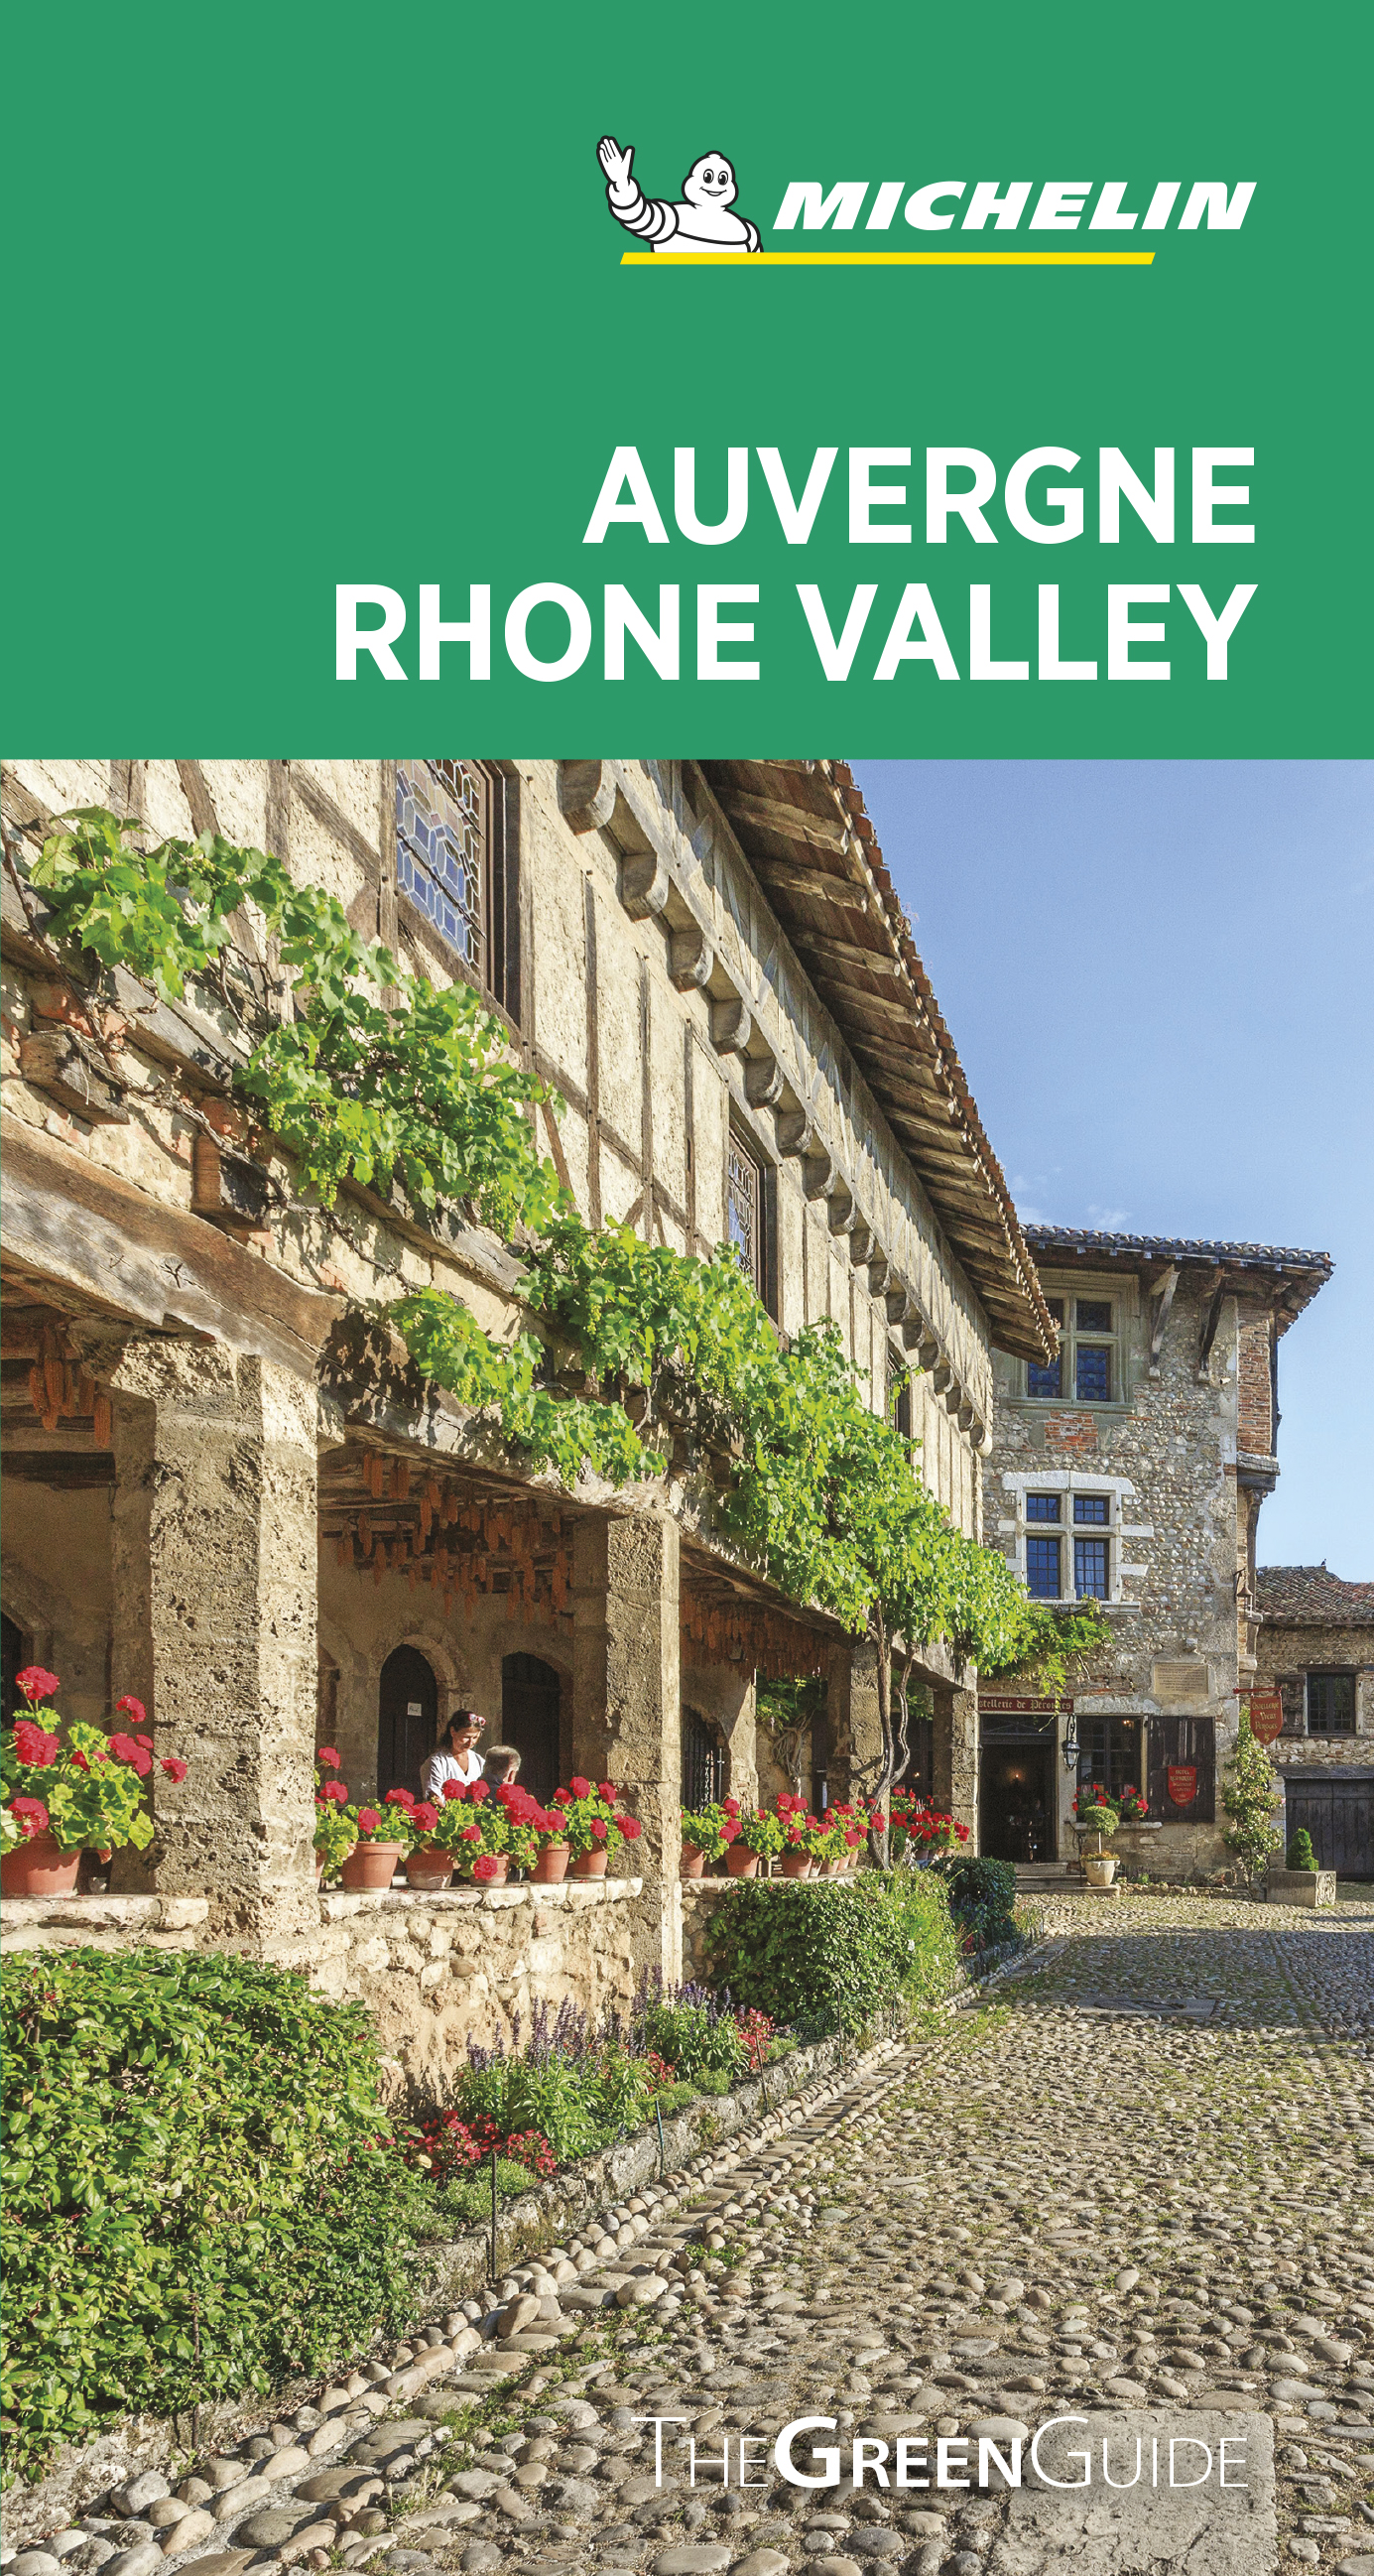 Green Guide Auvergne Rhone Valley